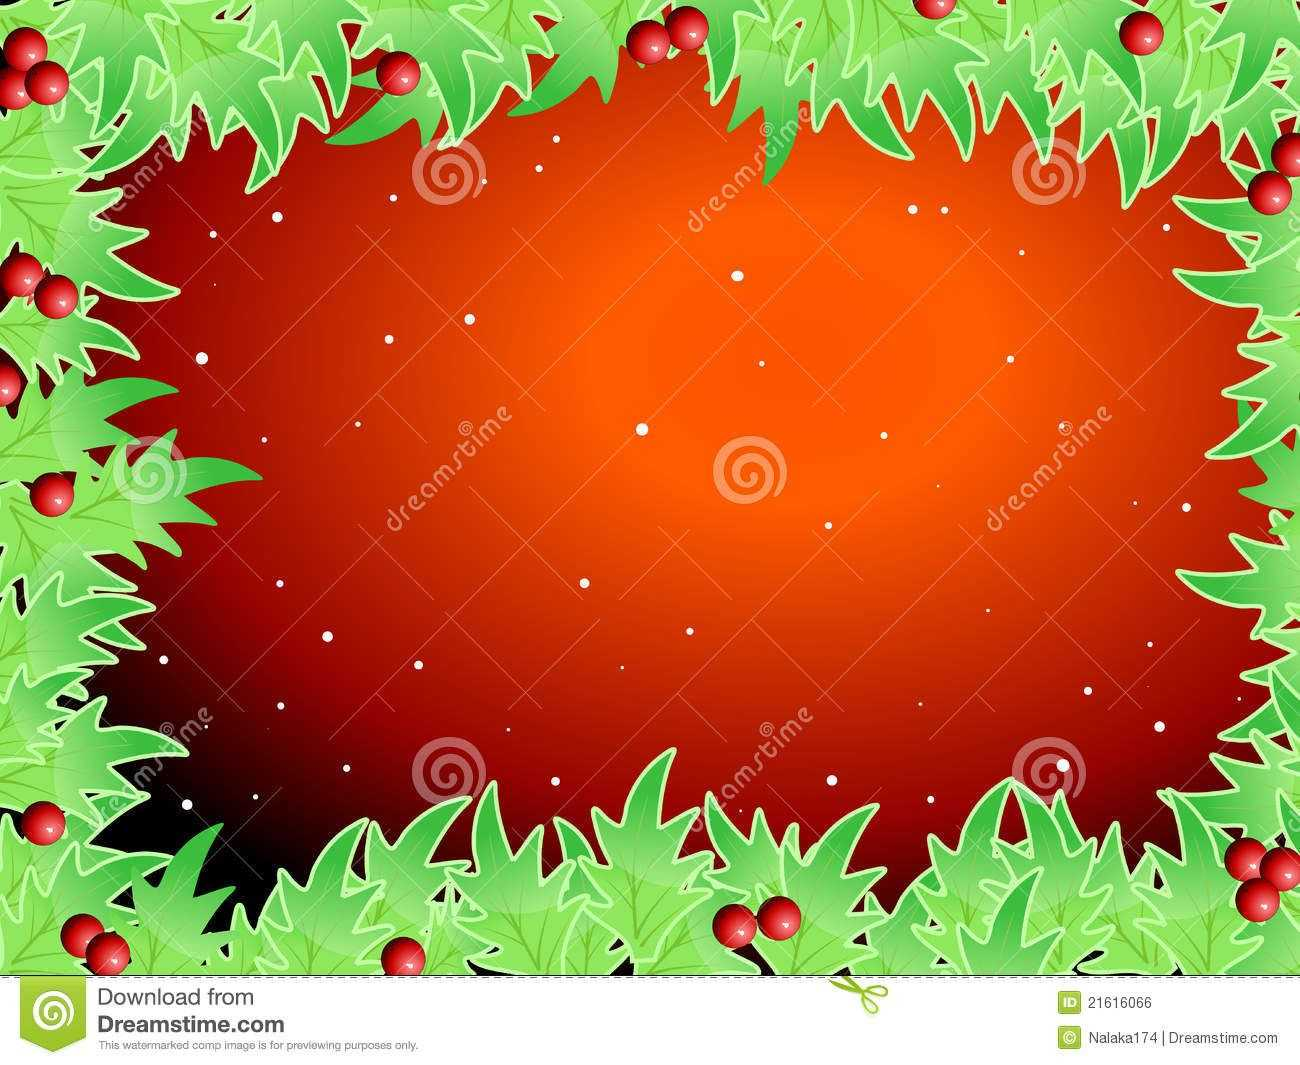 Blank Template For Christmas Greetings Card Royalty Free Pertaining To Blank Christmas Card Templates Free